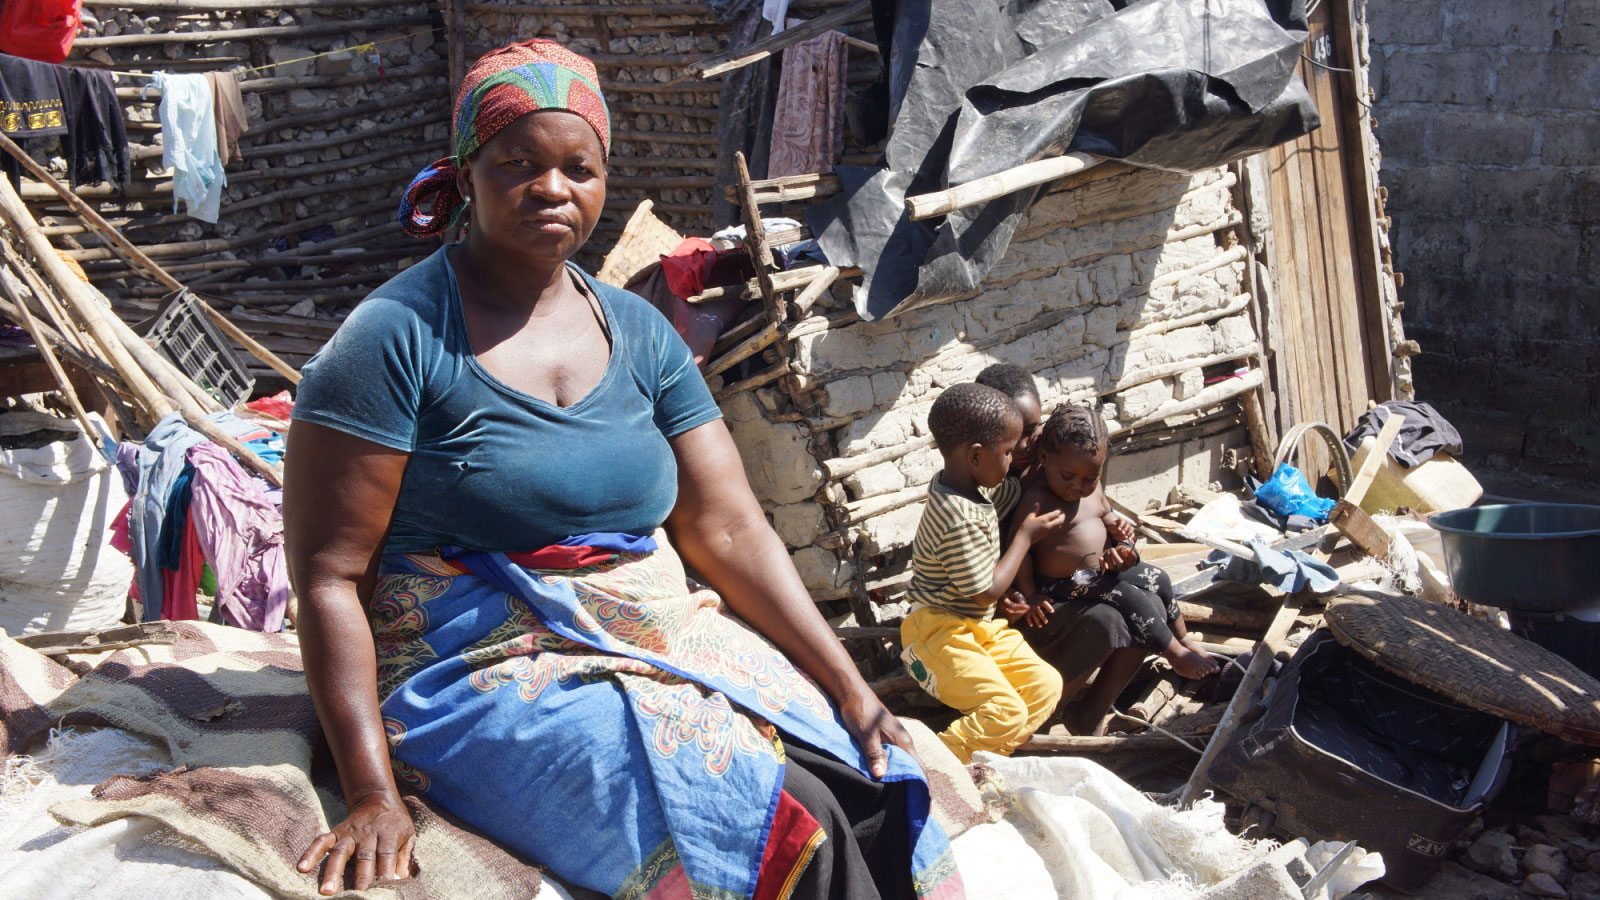 c_C-Briade_HI__A-woman-and-her-children-sit-among-their-damaged-belongings-in-Mozambique-following-Cyclone-Idai.jpg